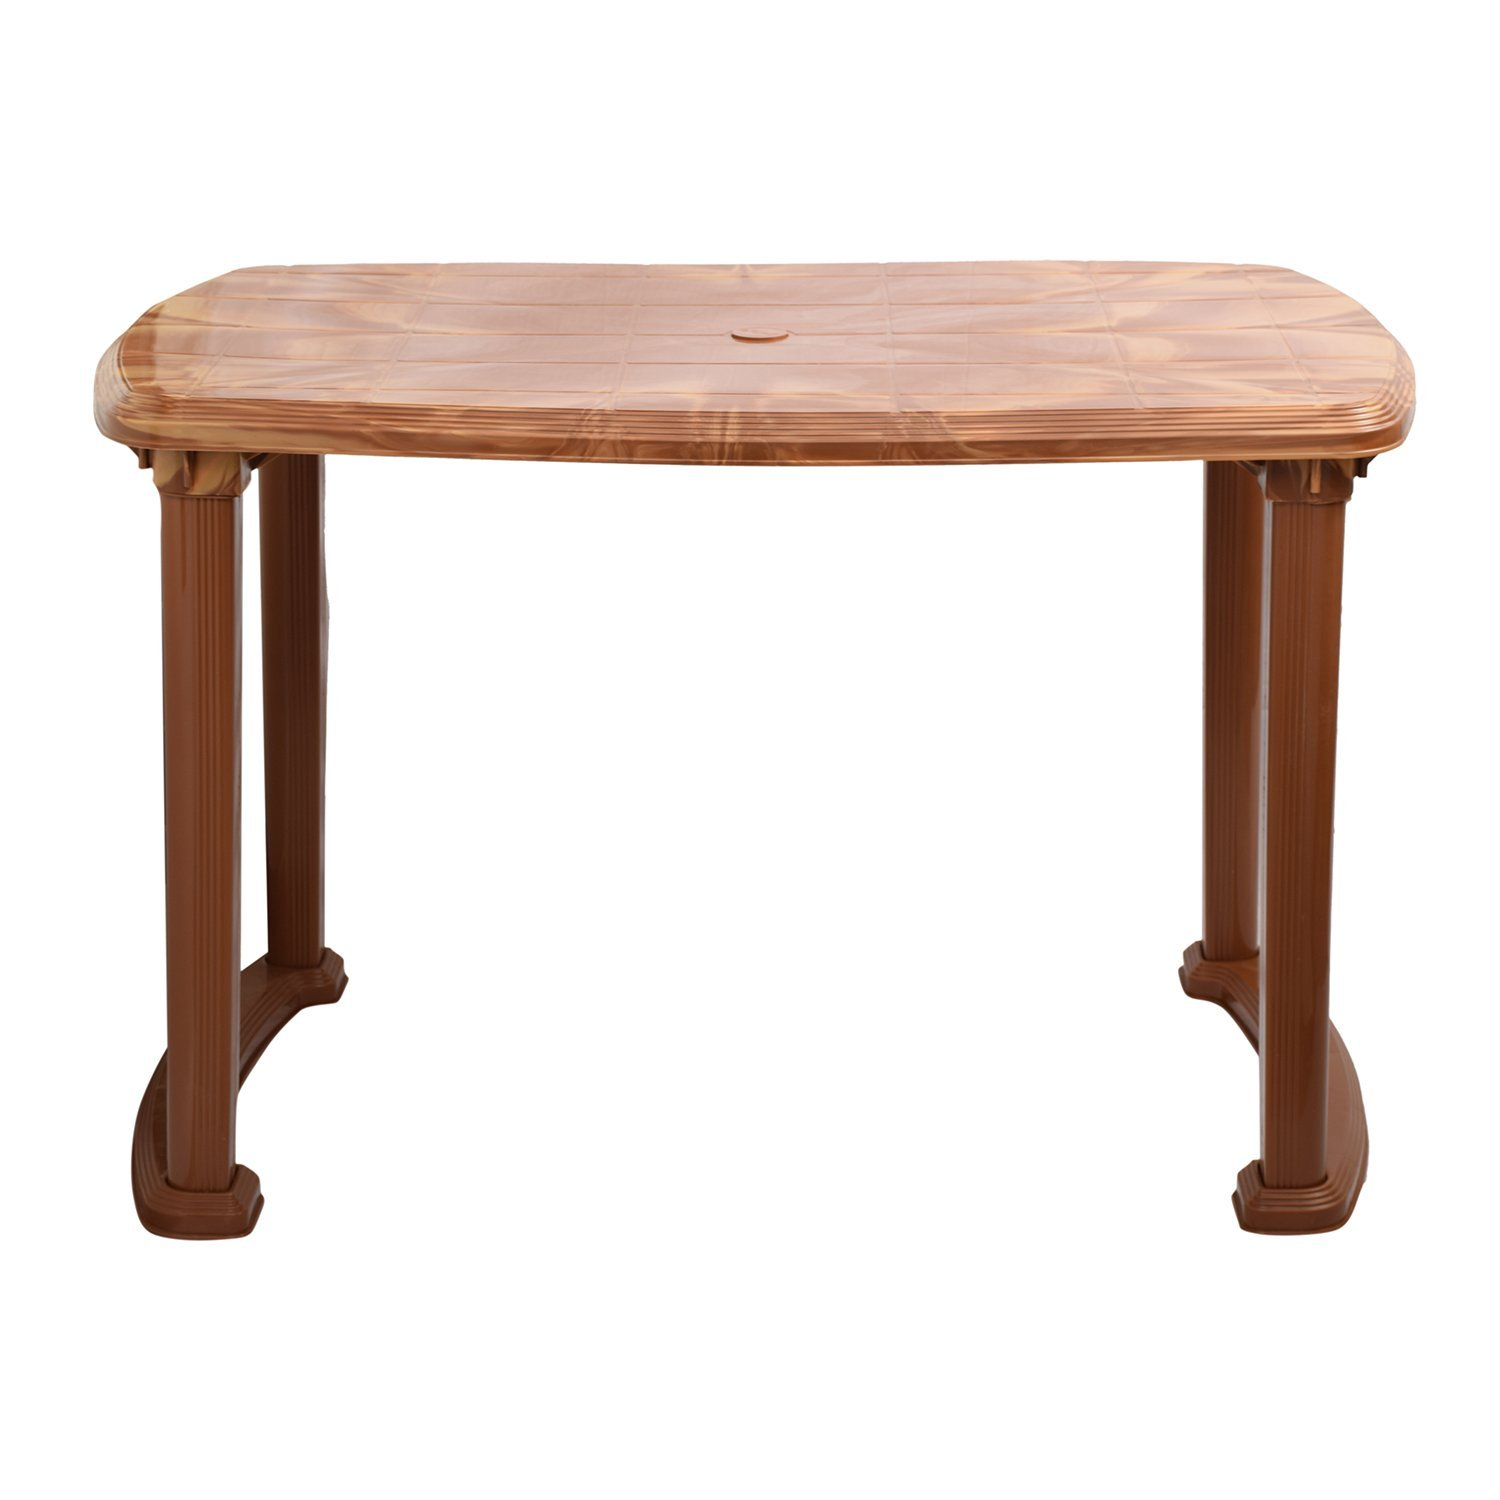 Dining Tables   Buy Dining Tables Online at Low Prices in India ... e48b6742d